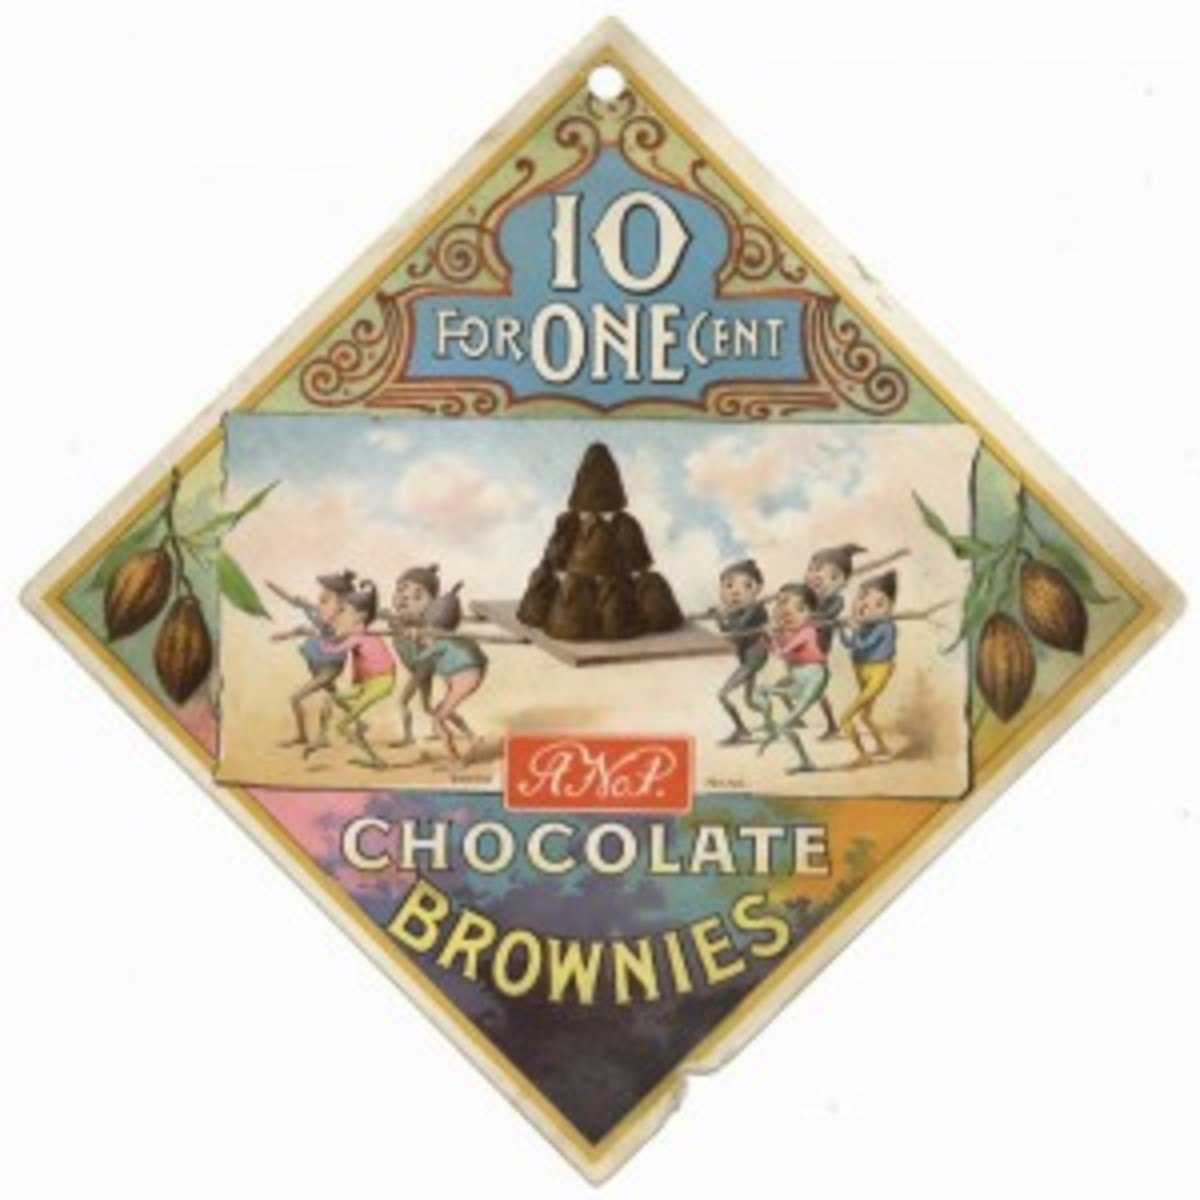 Chocolate Brownie Advertising Candy Sign (800x799)